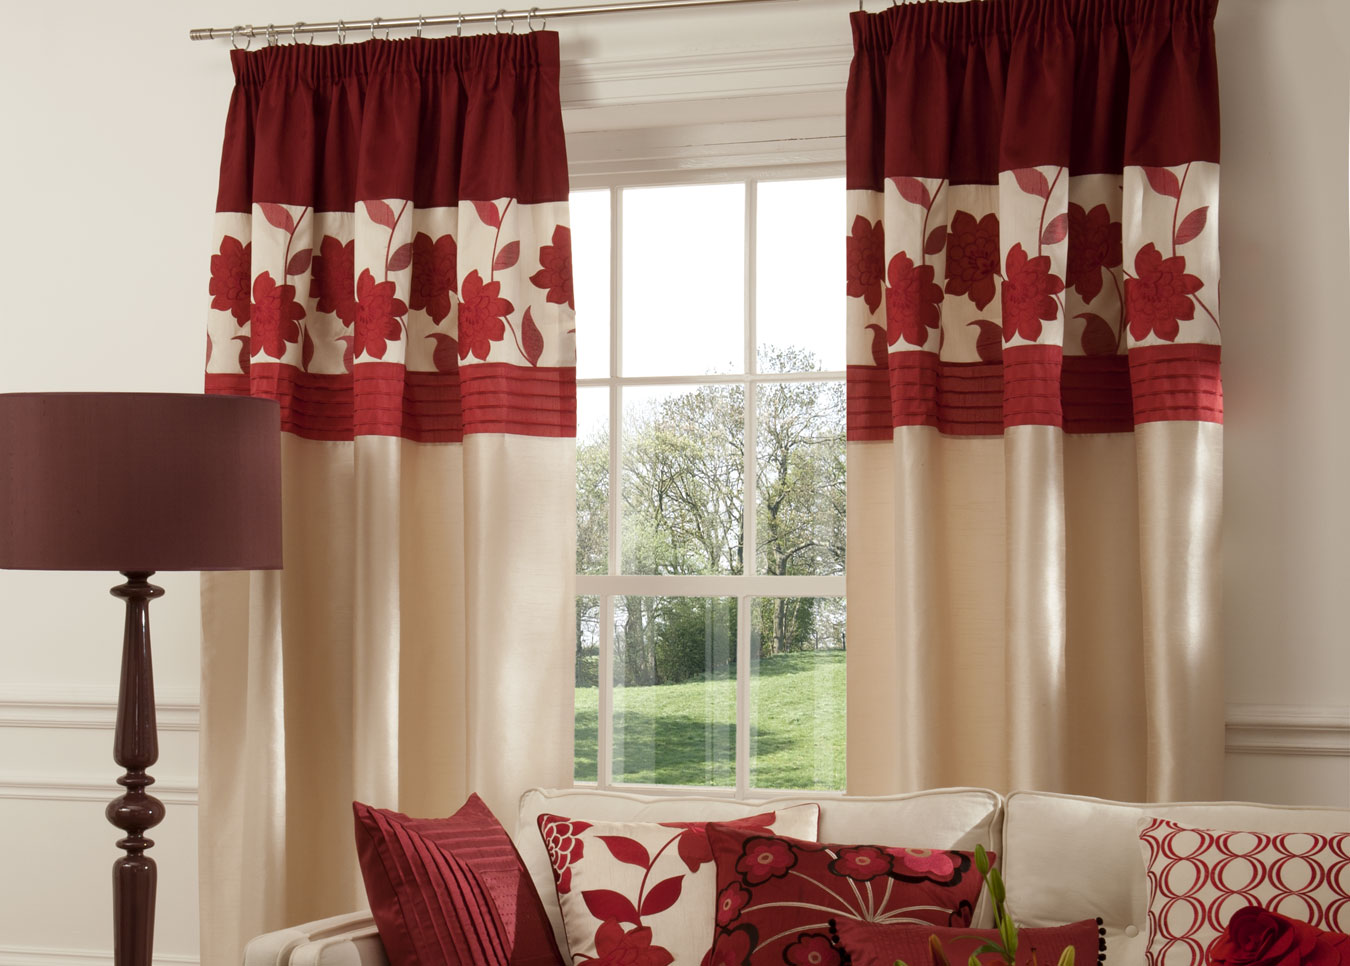 maroon curtains for living room window treatments design ideas. Black Bedroom Furniture Sets. Home Design Ideas